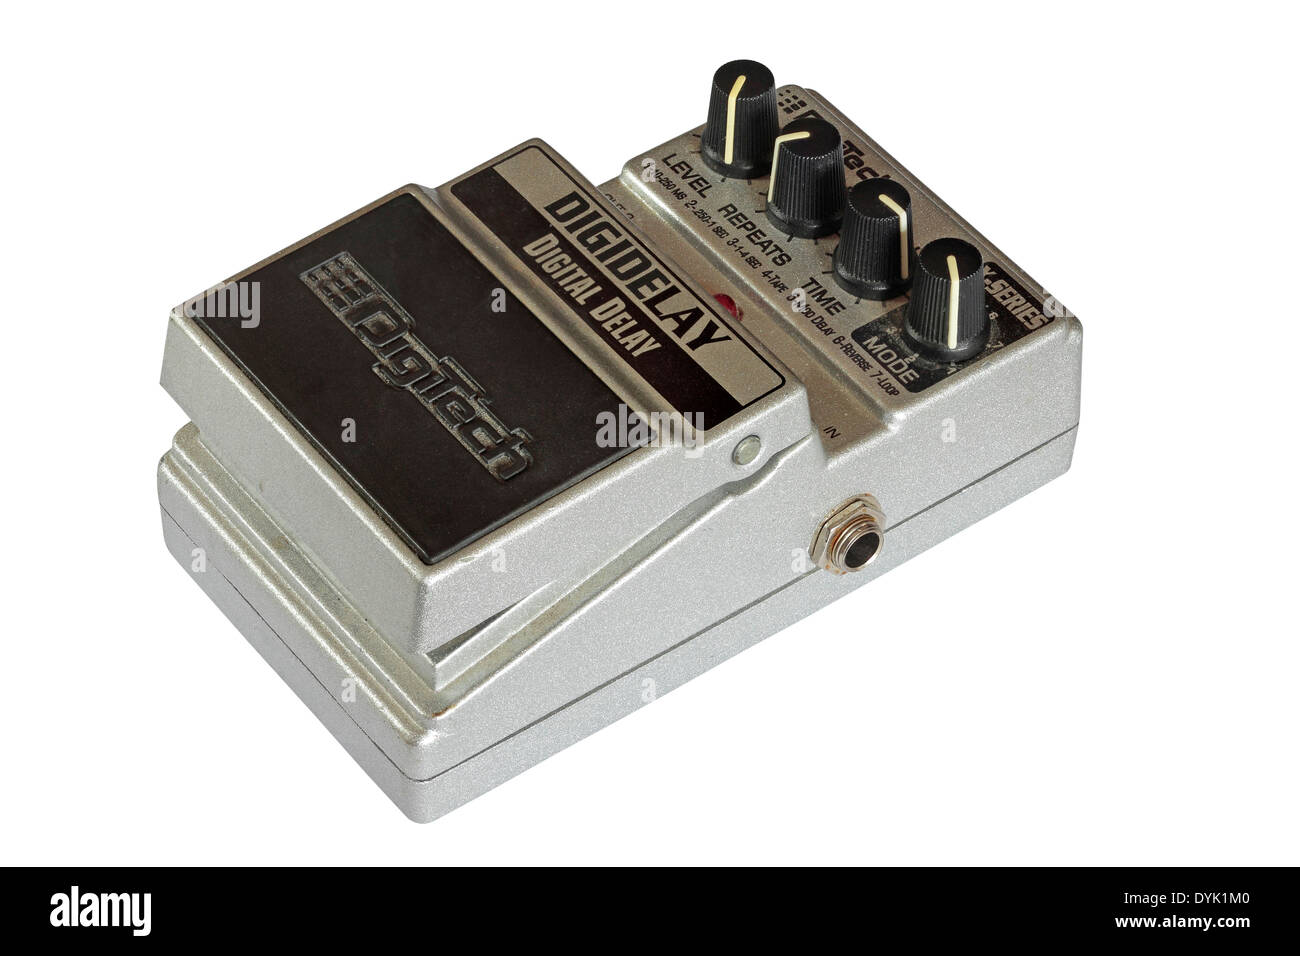 DigiTech X-Series Digital Delay guitar effects pedal isolated on white background - Stock Image